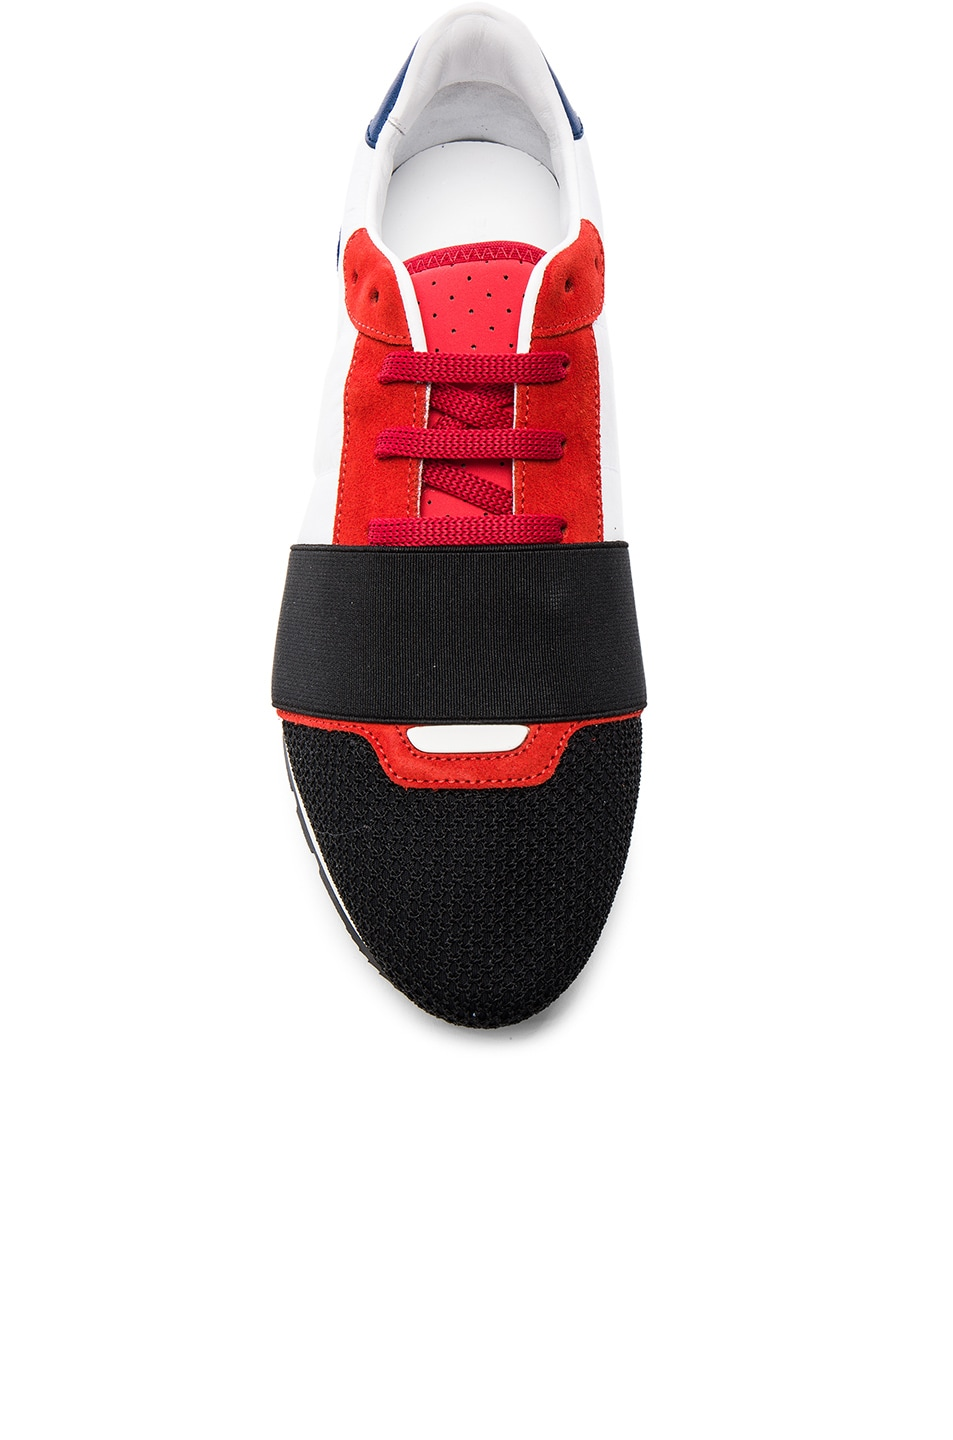 901de2541474 Image 4 of Balenciaga USA Runner Sneakers in Red Multi